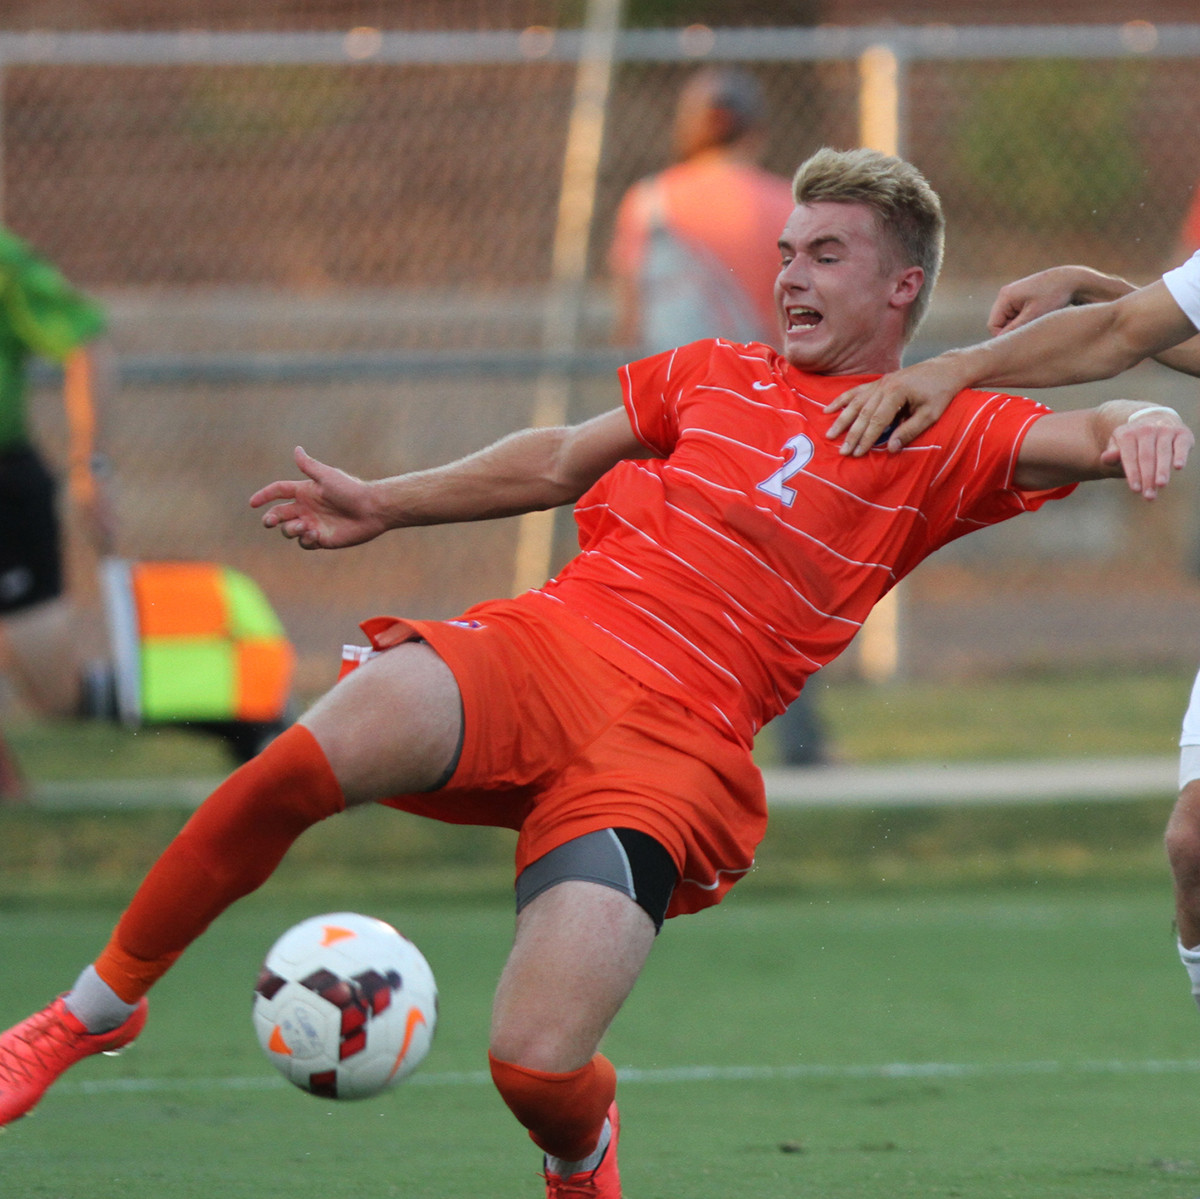 Clemson Falls to San Diego State in Weekend Opener